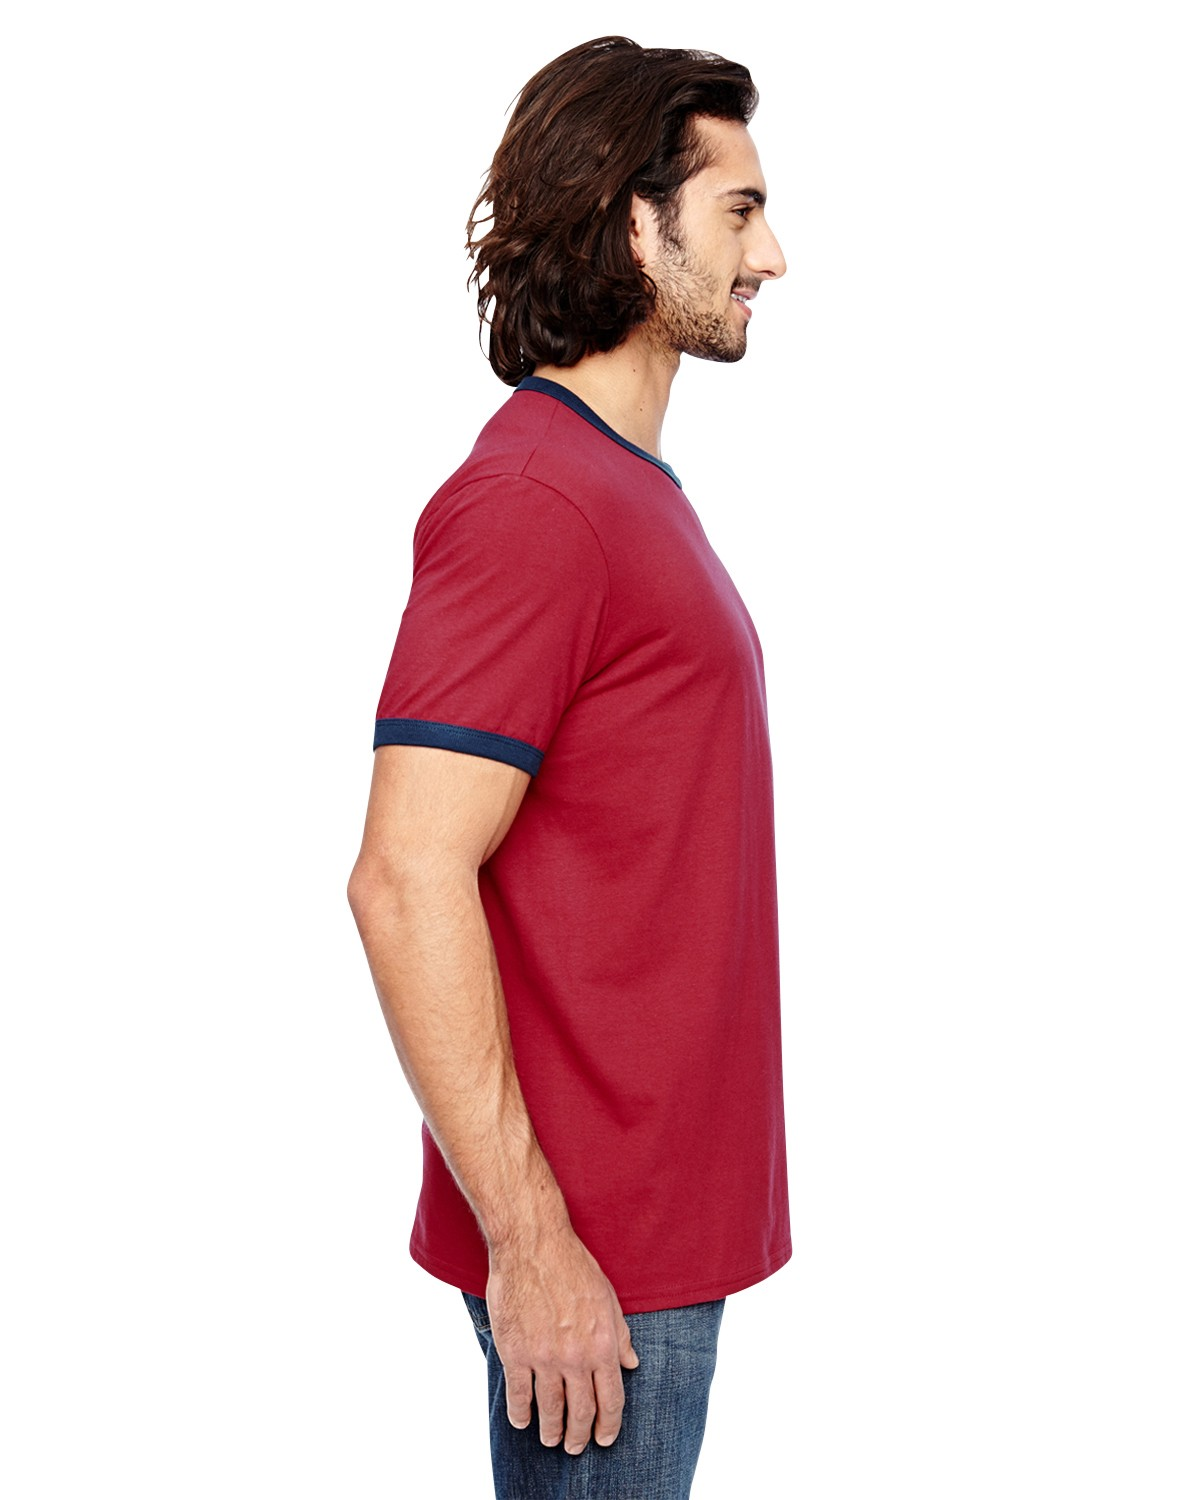 988AN Anvil IND RED/NAVY